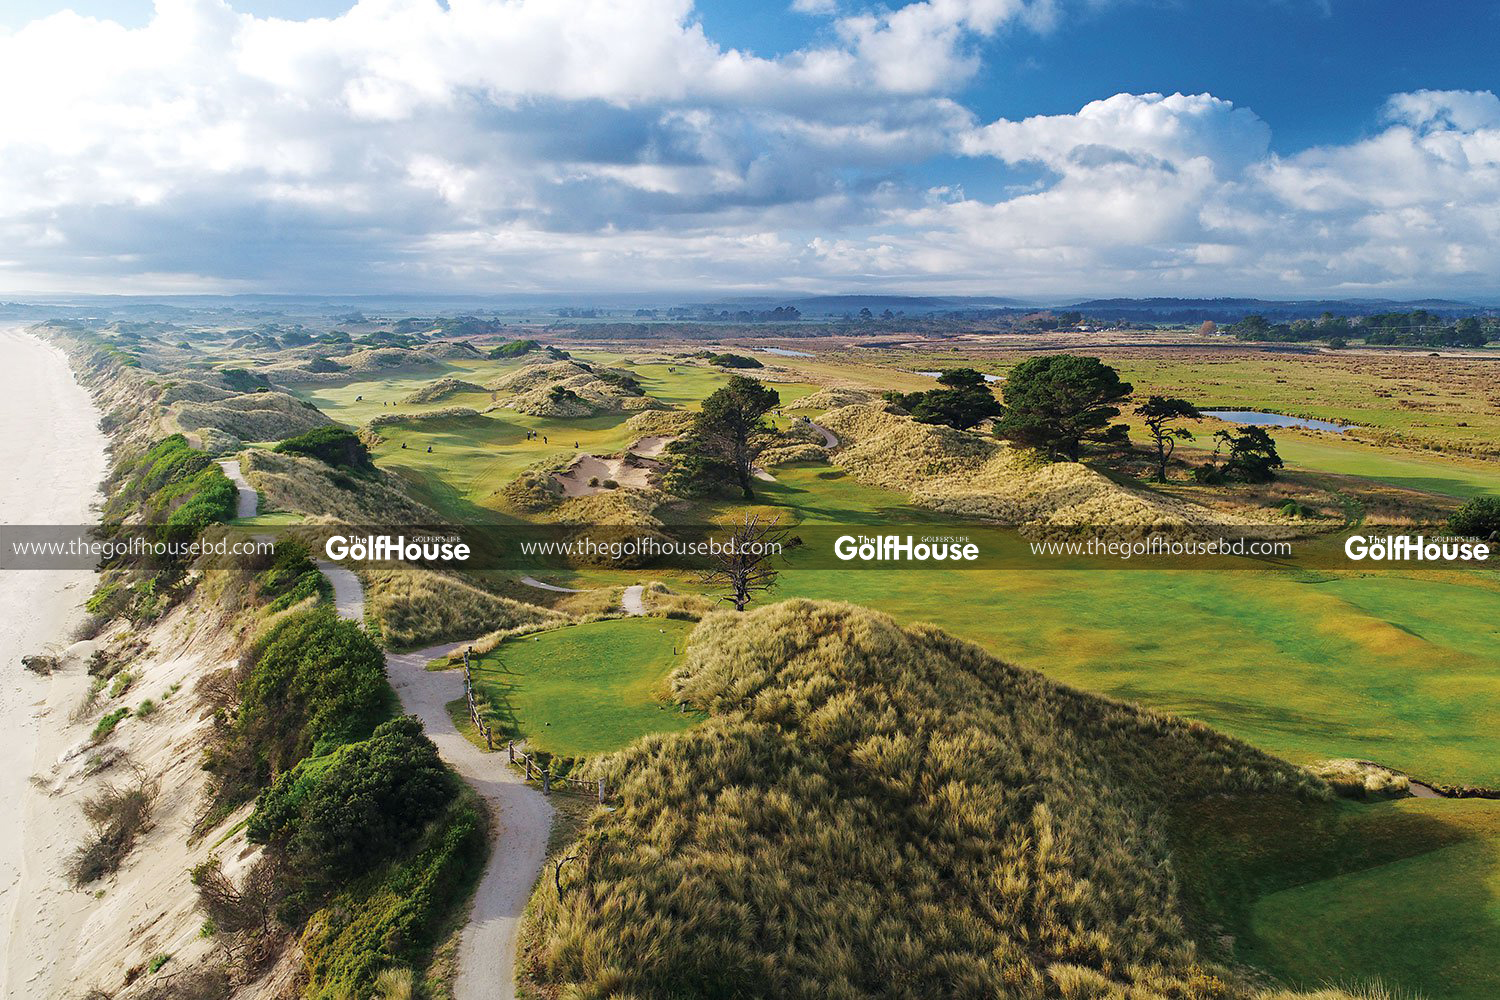 On the Northeast coast of Tasmania there's a hidden gem that is one of the world's top golf destinations: Barnbougle Links Golf Resort.